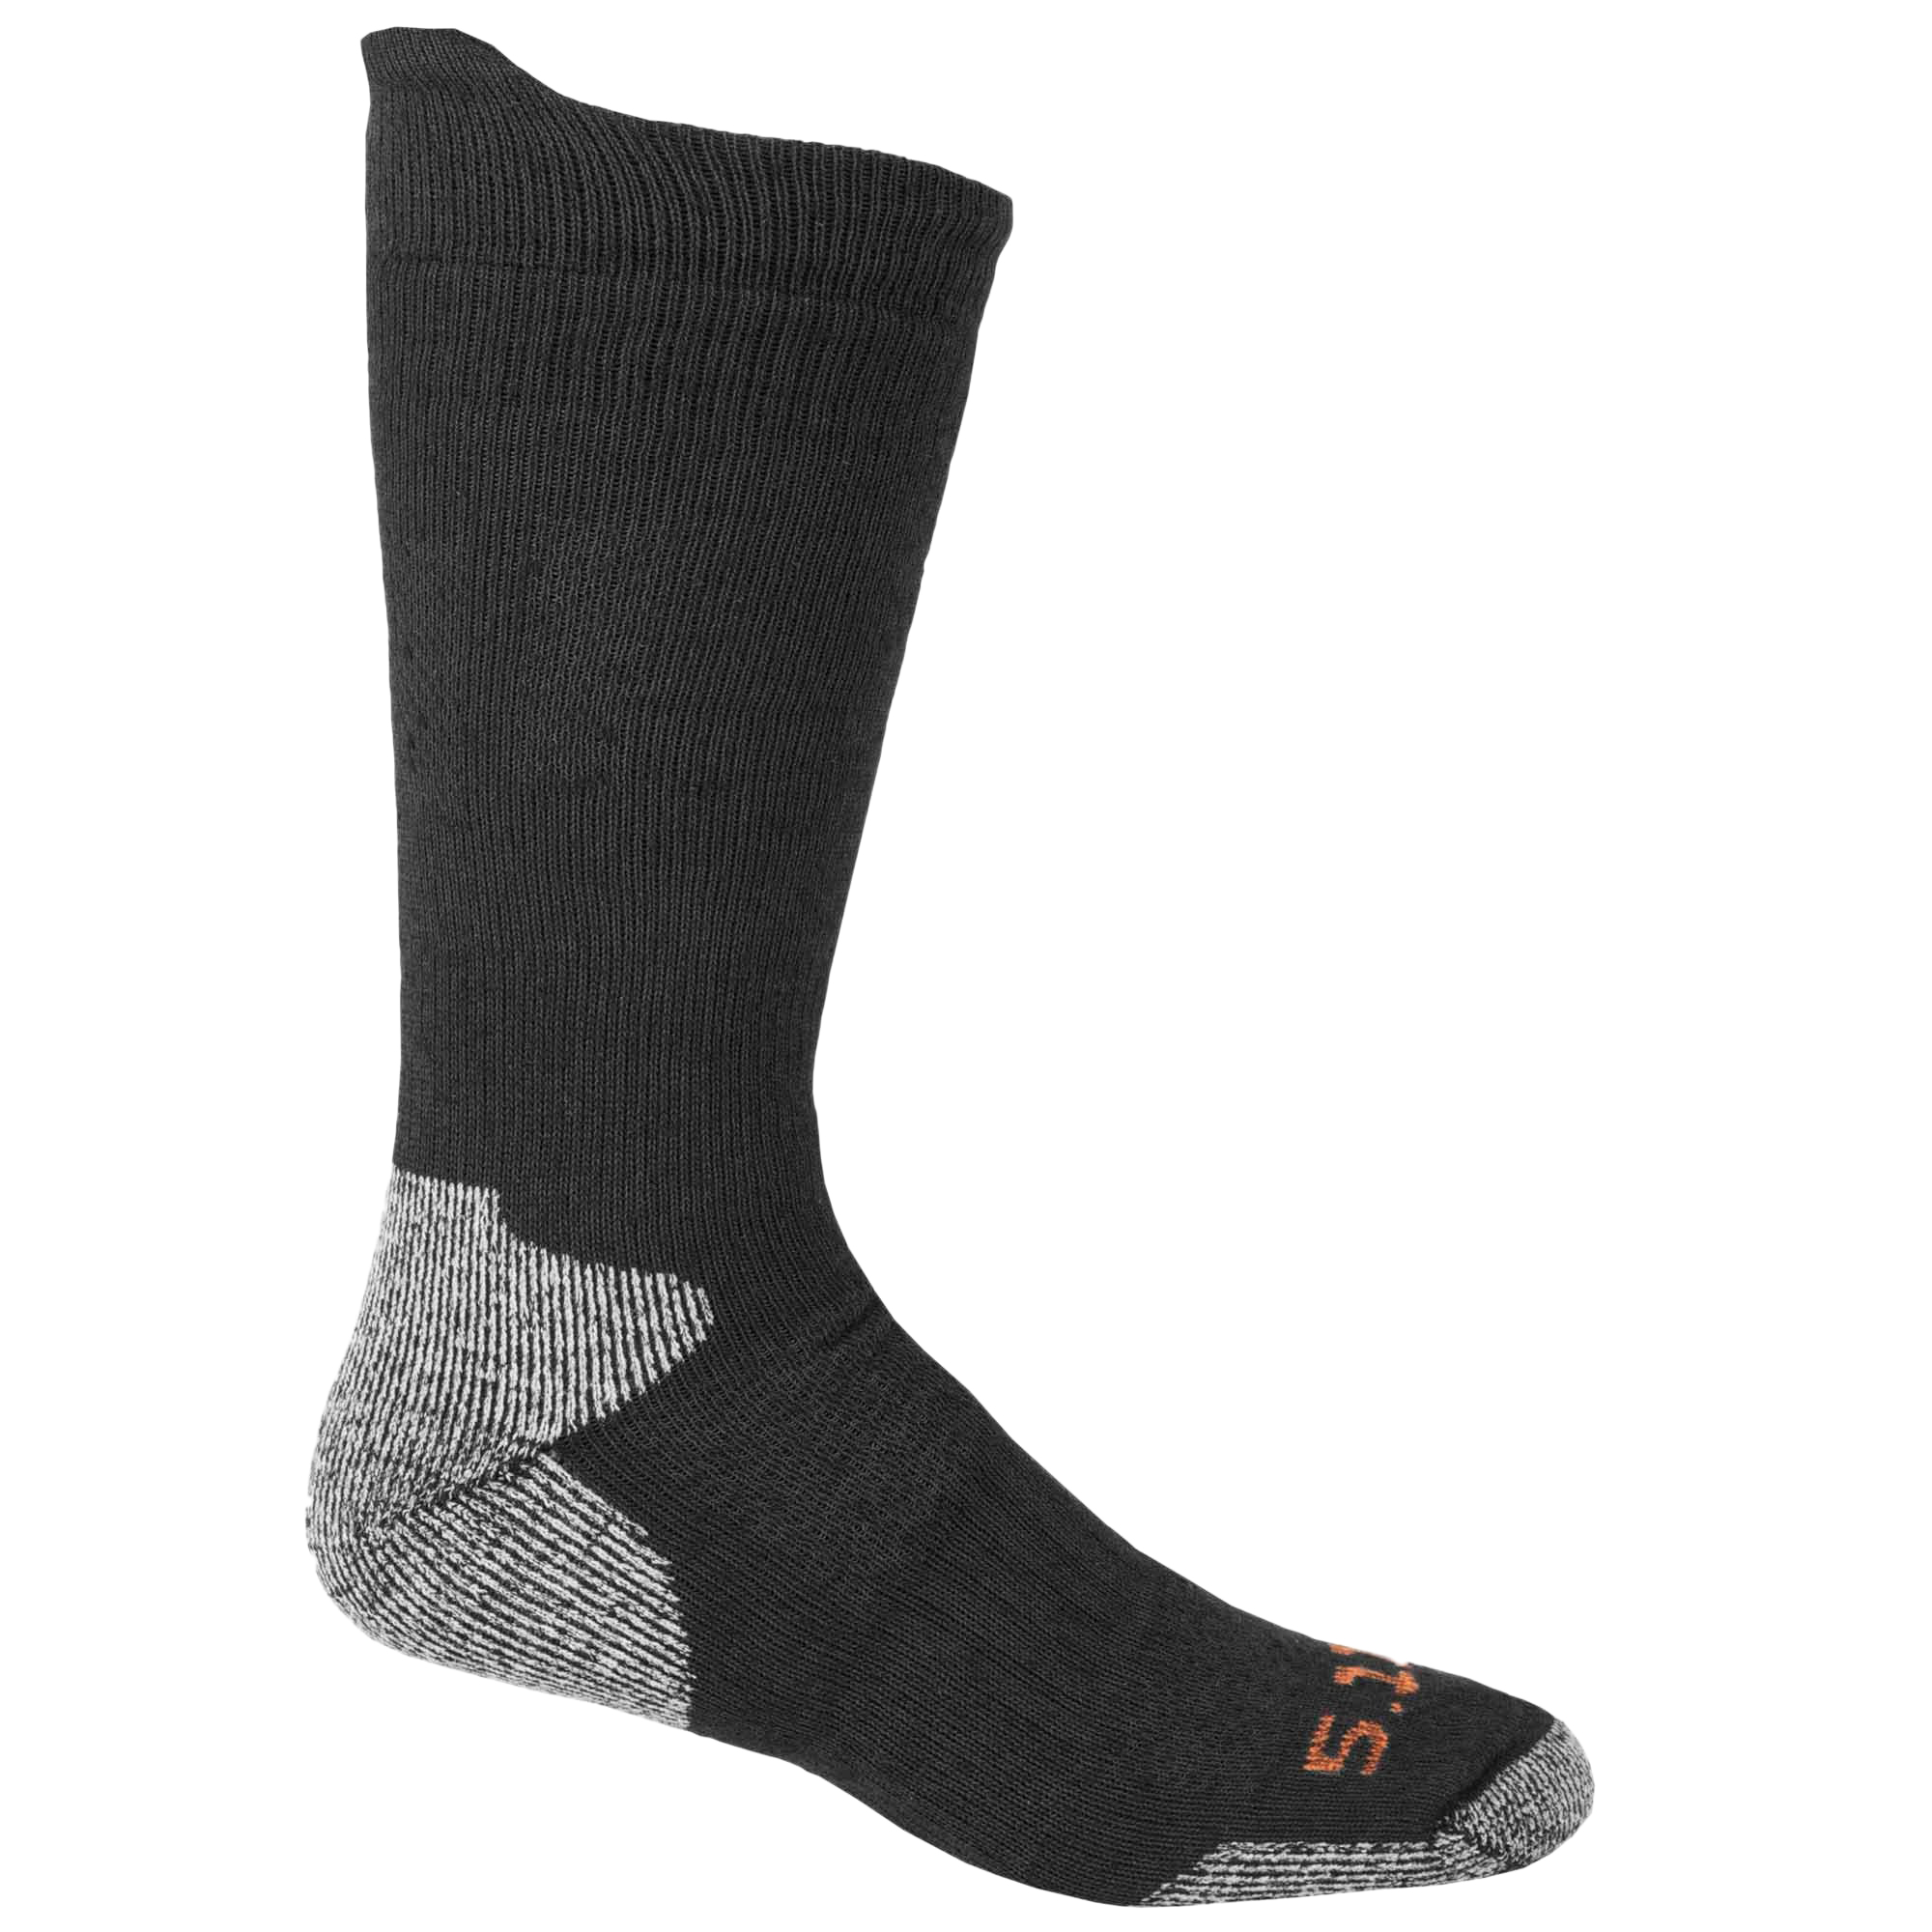 Tactical 5.11 Unisex Adult Cold Weather Crew Socks